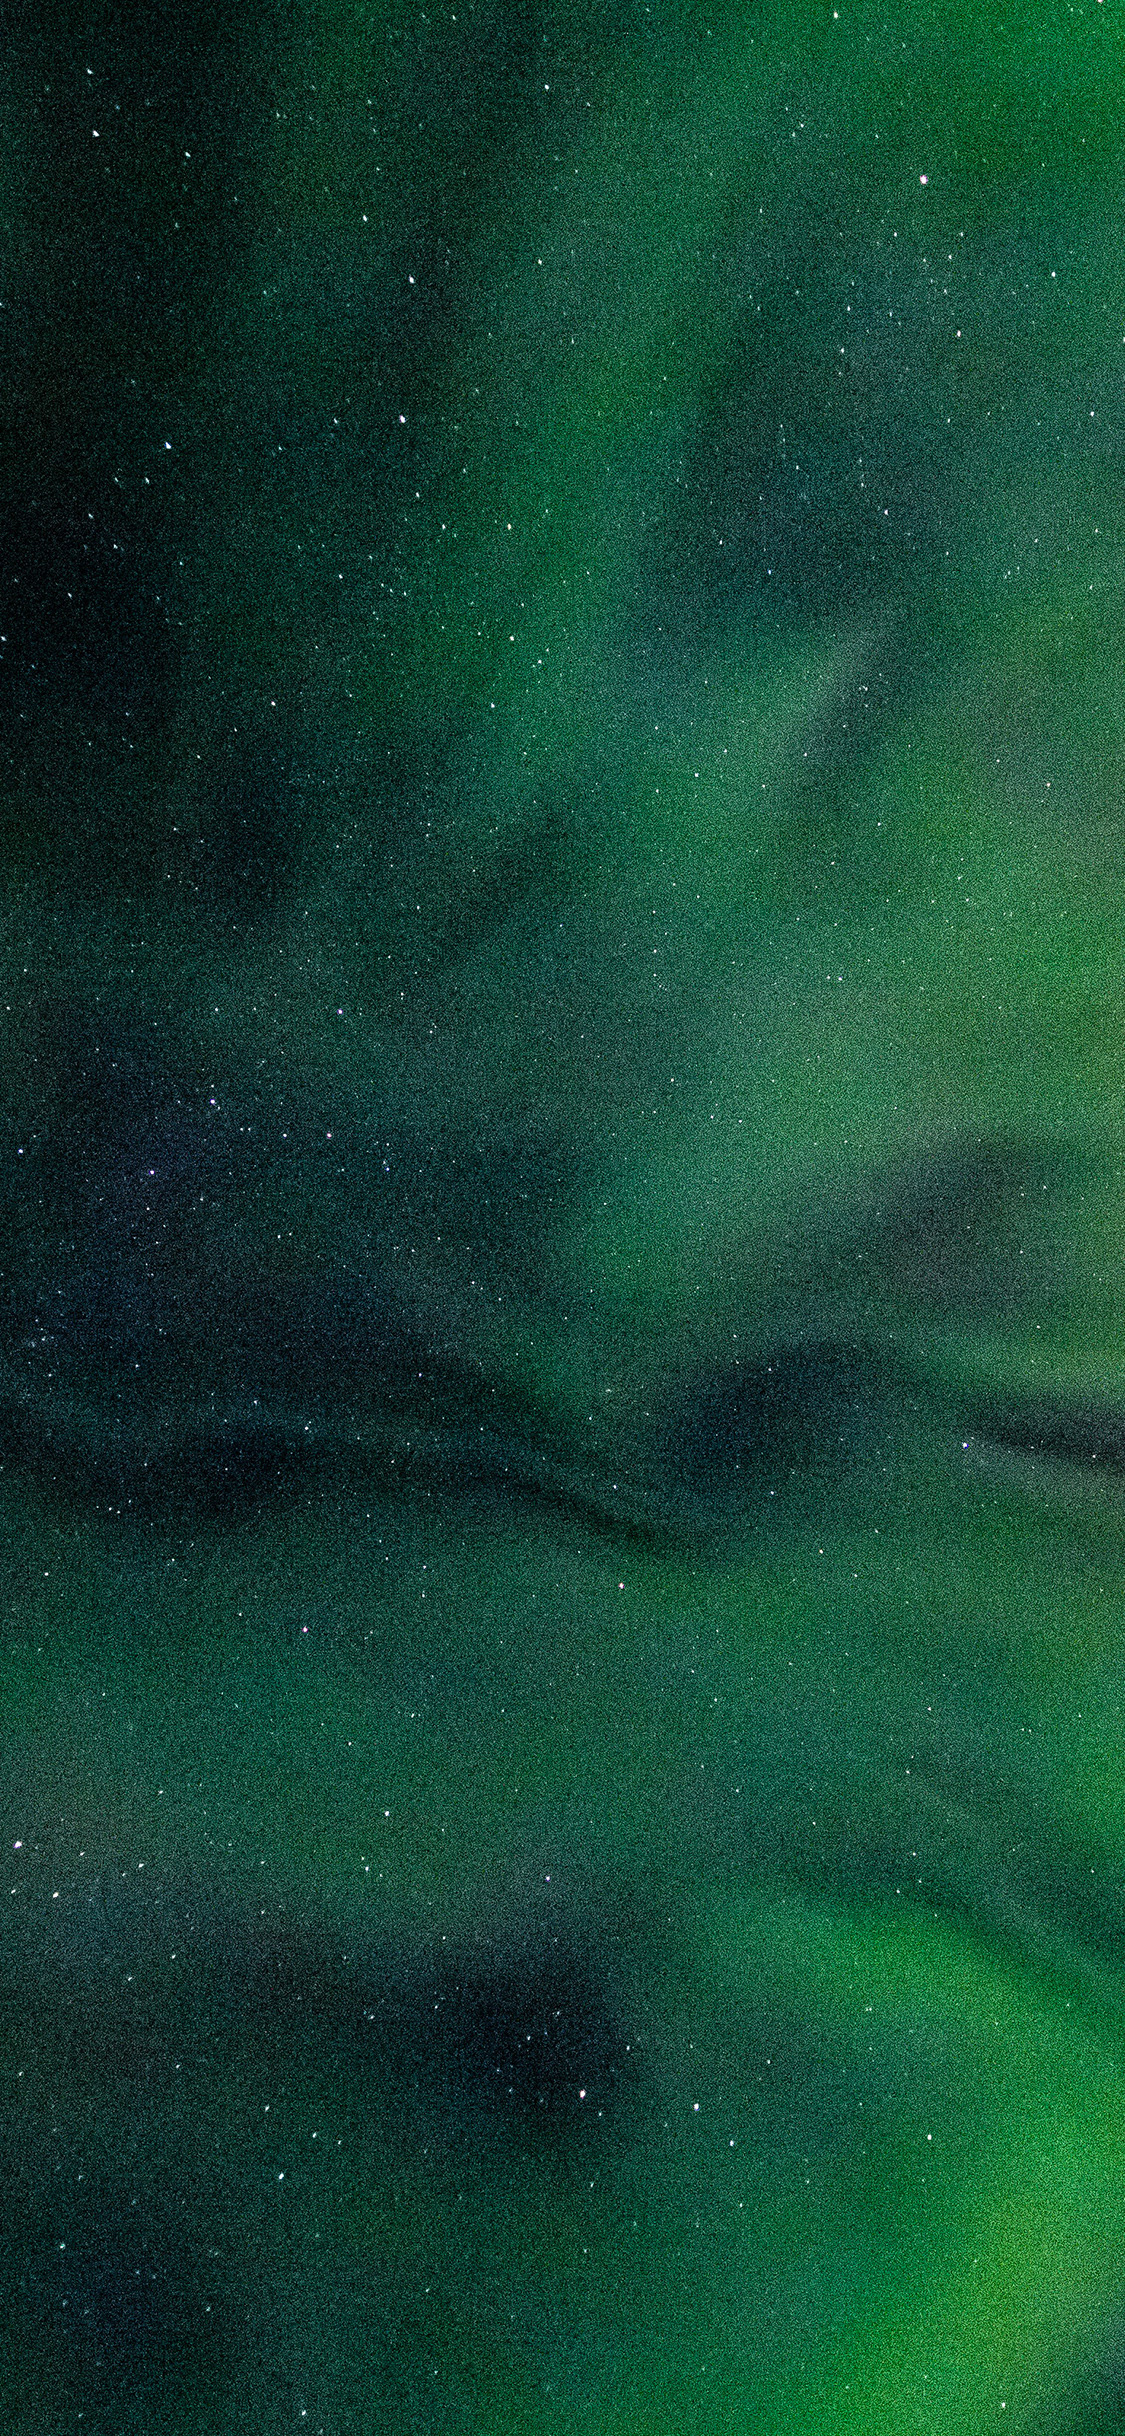 iPhone wallpaper aurora 1 Les 3Wallpapers iPhone du jour (19/01/2018)